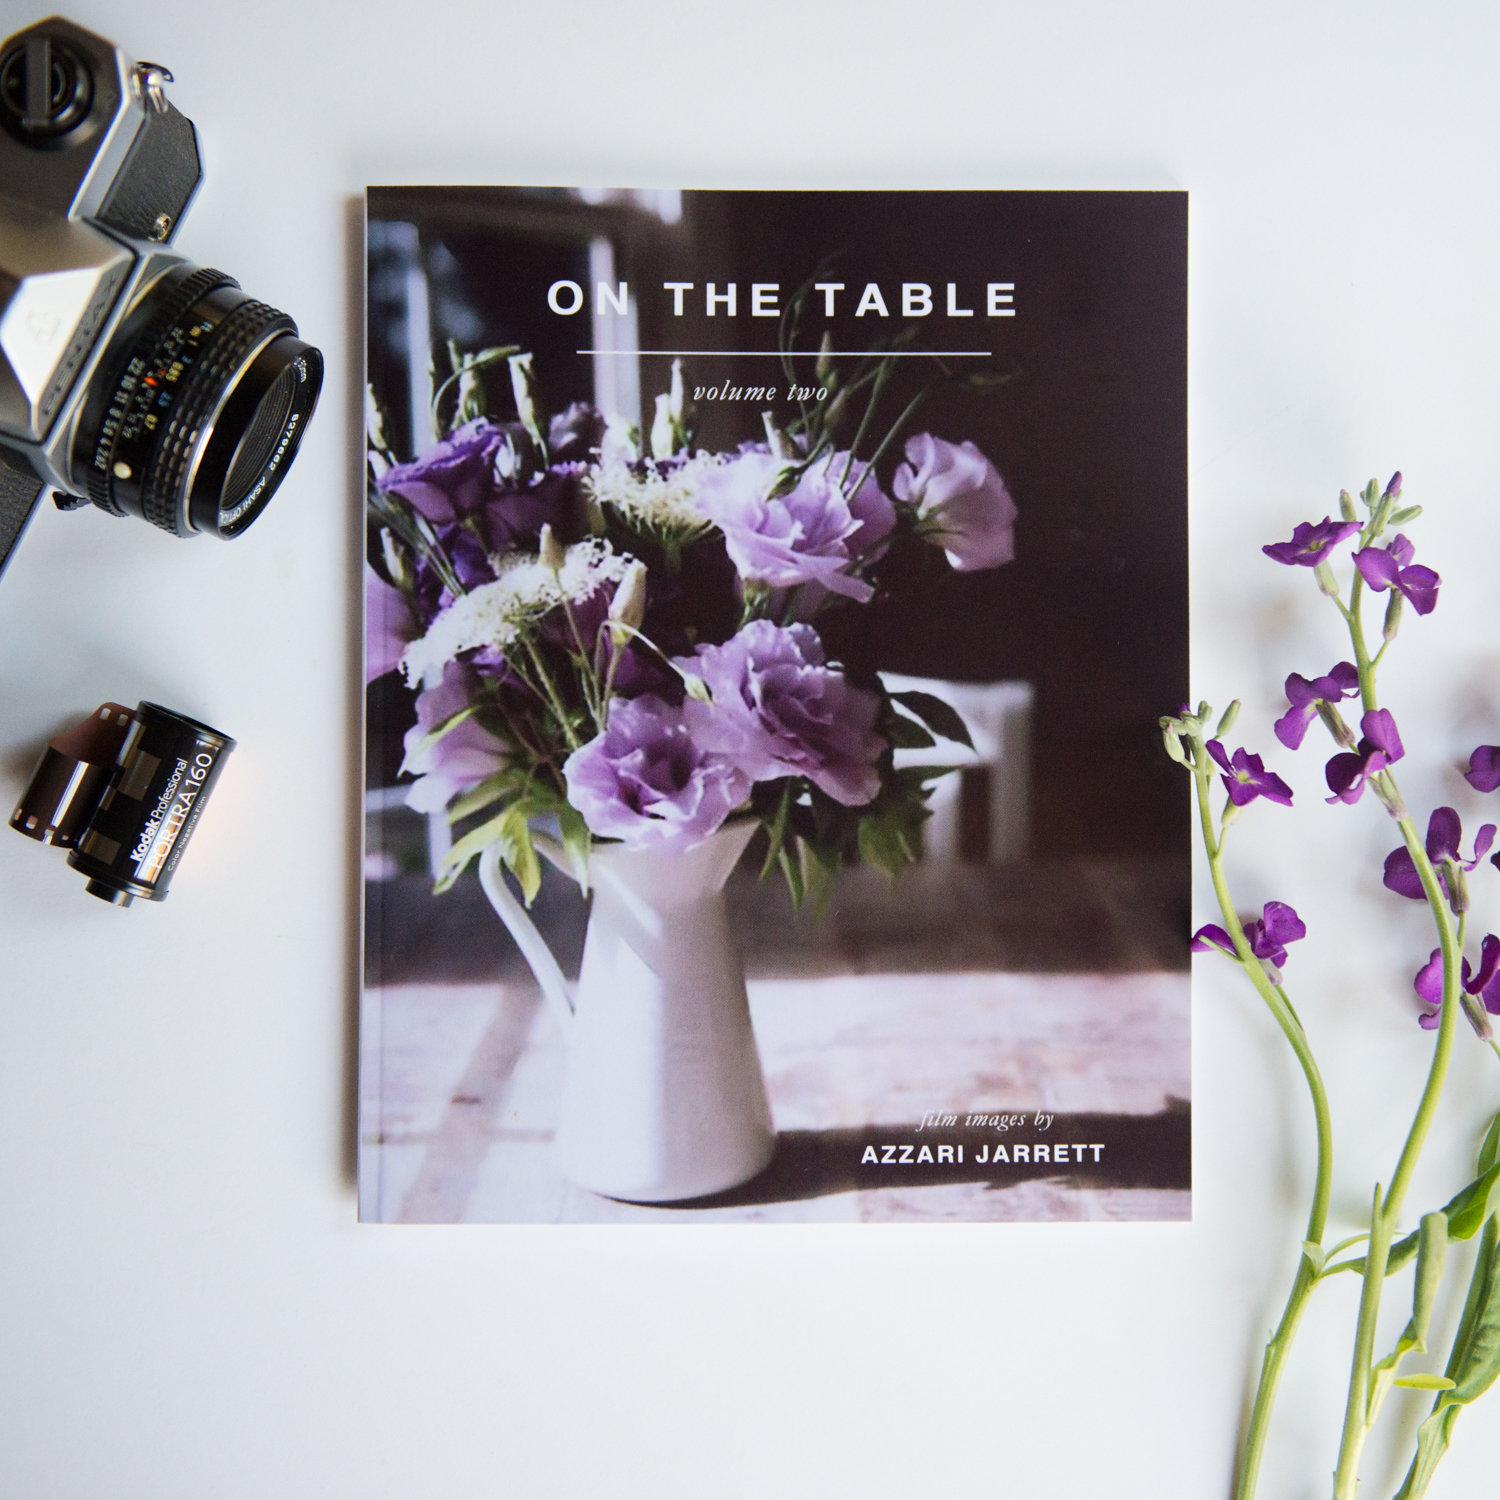 On The Table, Volume 2 - Film photography Book by Azzari Jarrett